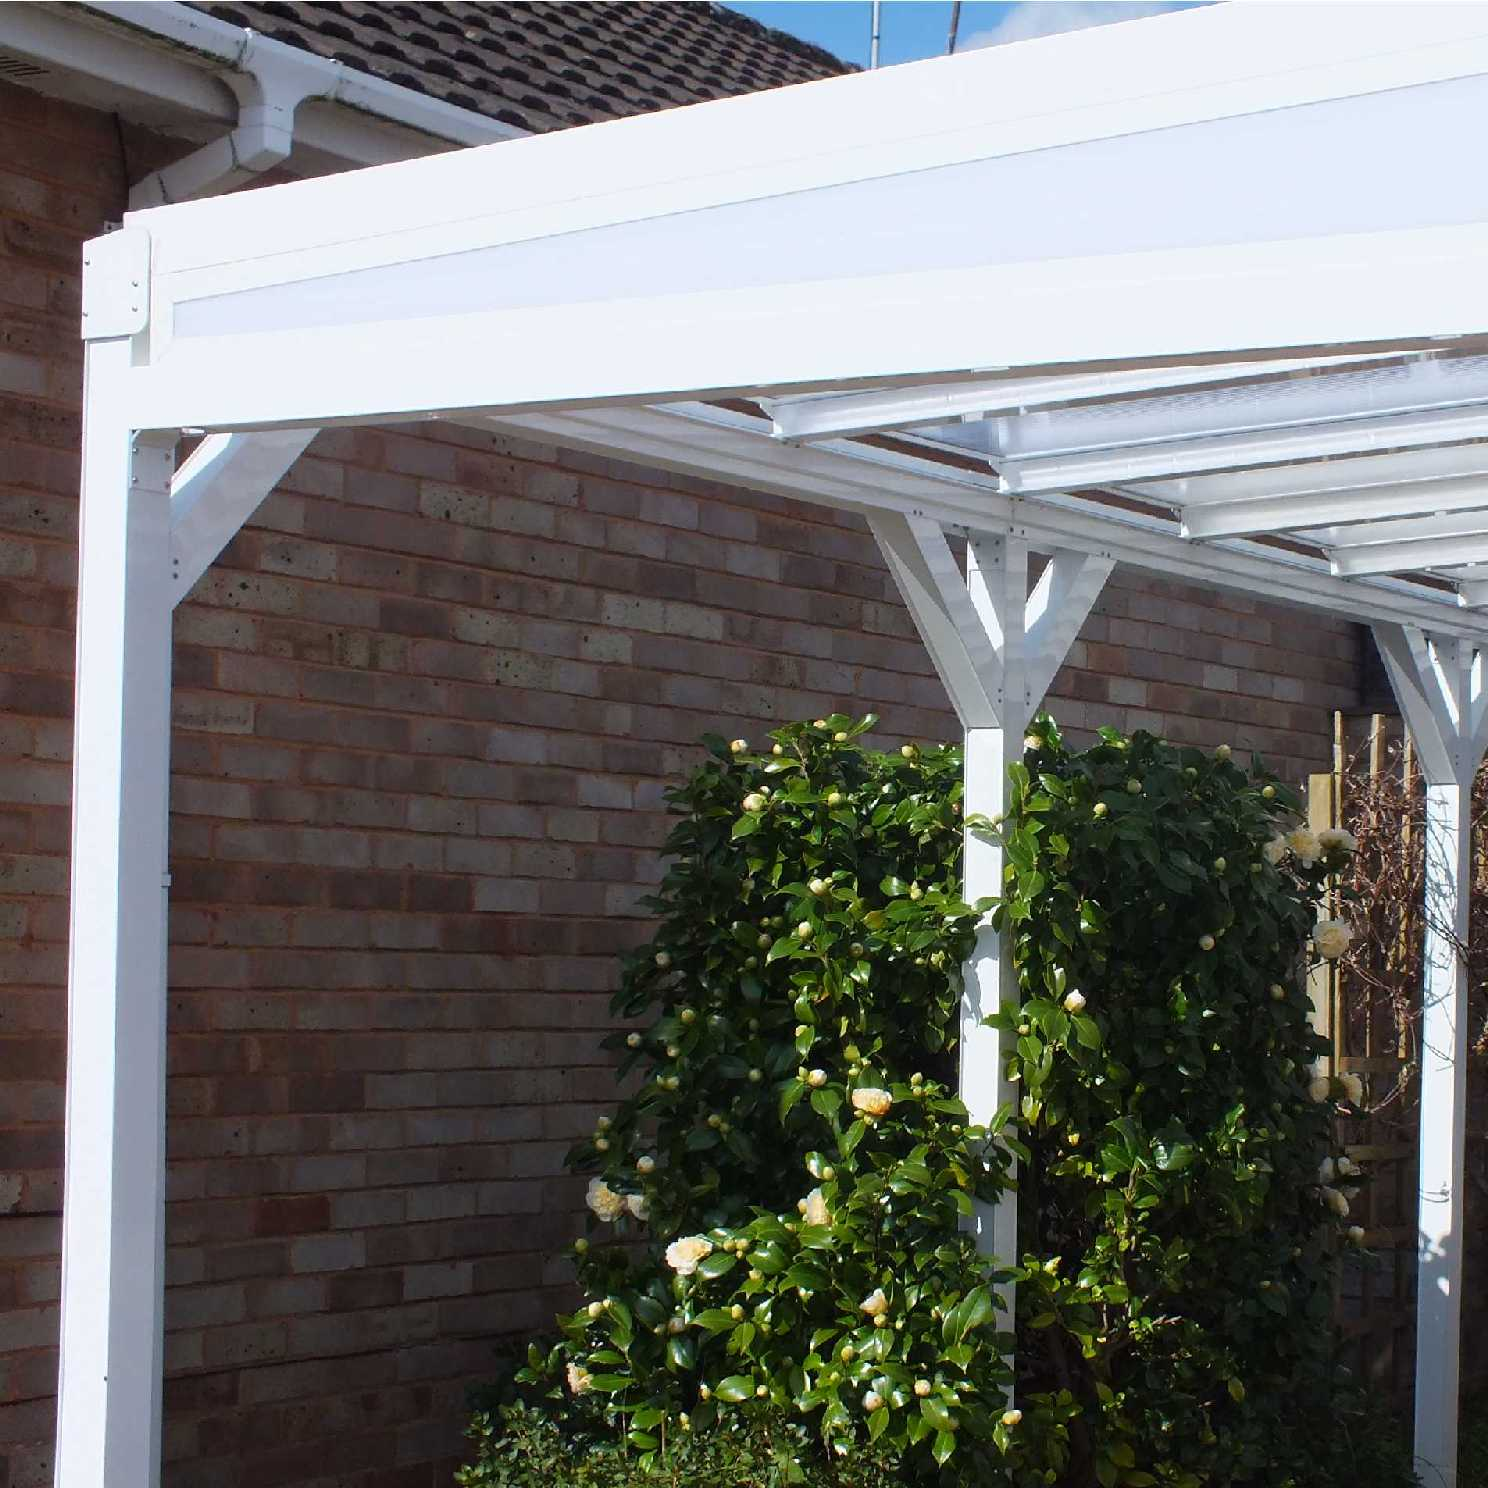 Omega Smart Lean-To Canopy with 16mm Polycarbonate Glazing - 12.0m (W) x 1.5m (P), (5) Supporting Posts from Omega Build